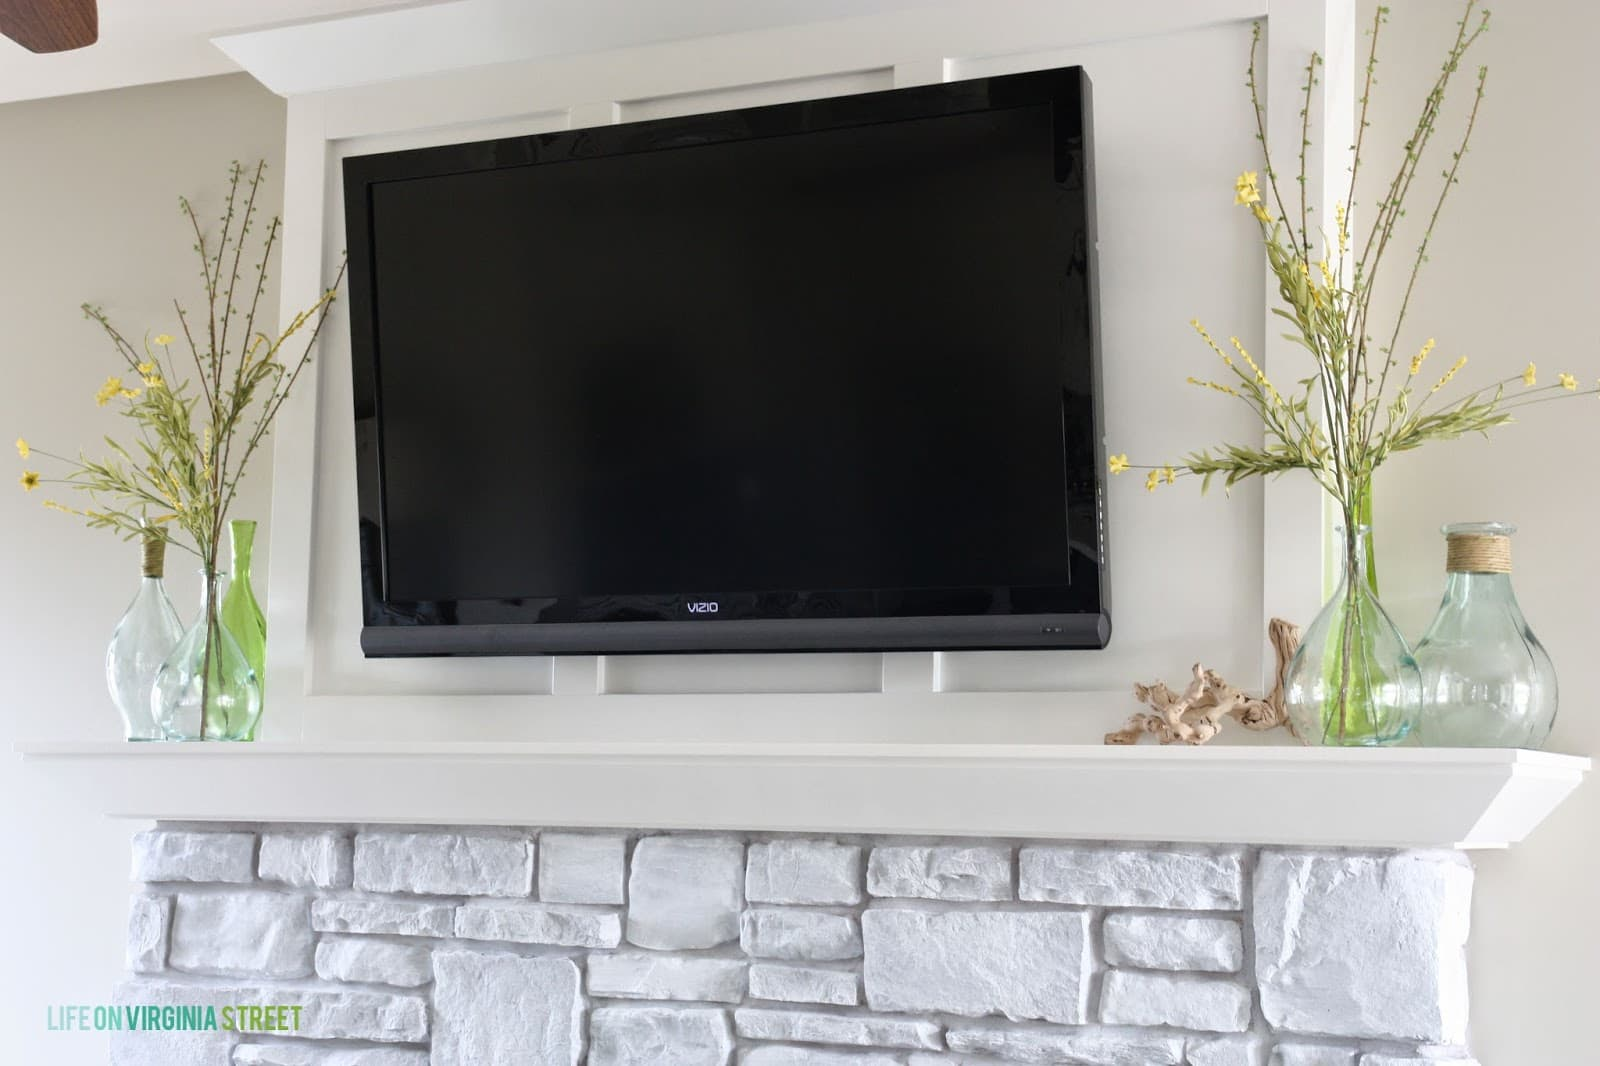 The final look- TV mounted above the updated whitewashed fireplace stone.